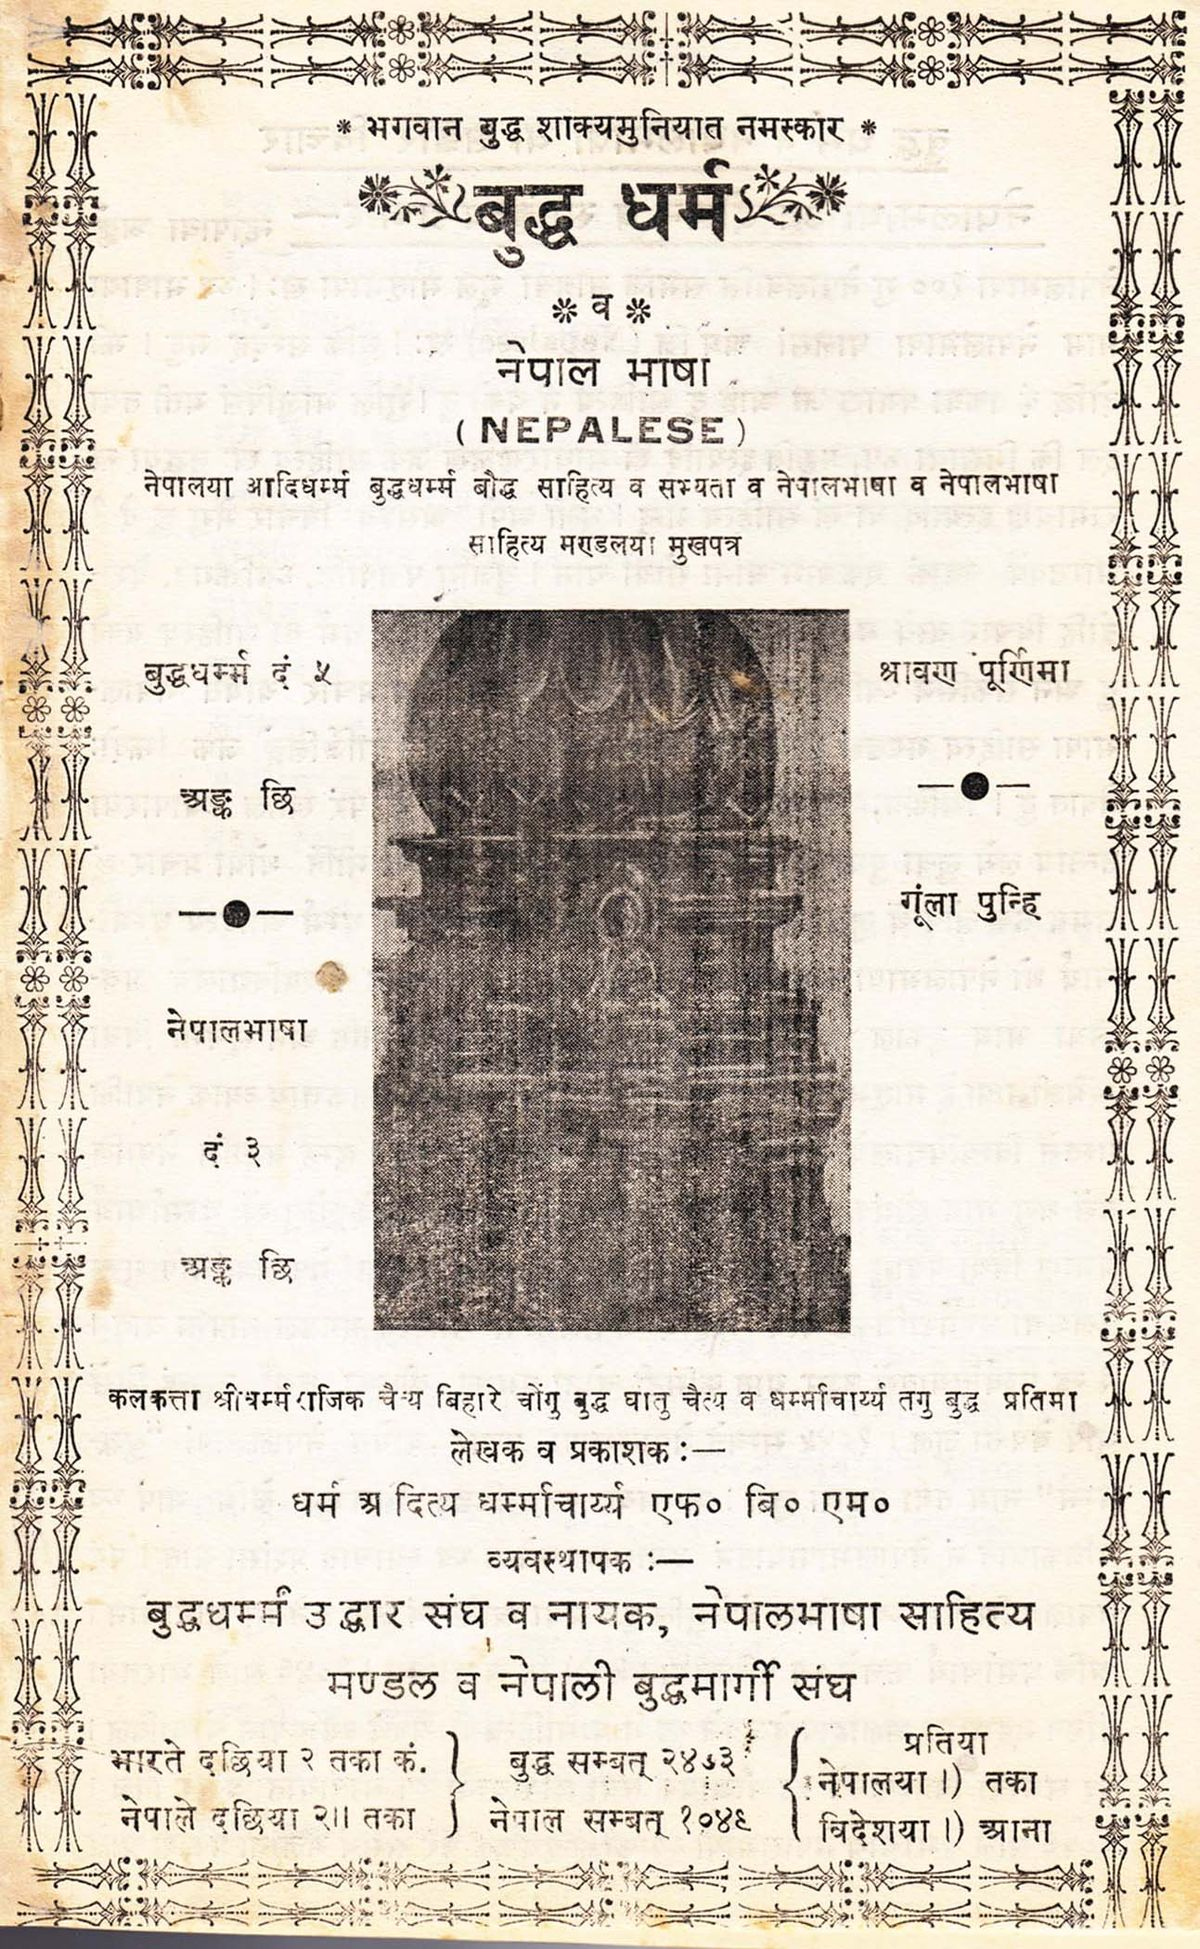 Bal diwas essay in nepali language